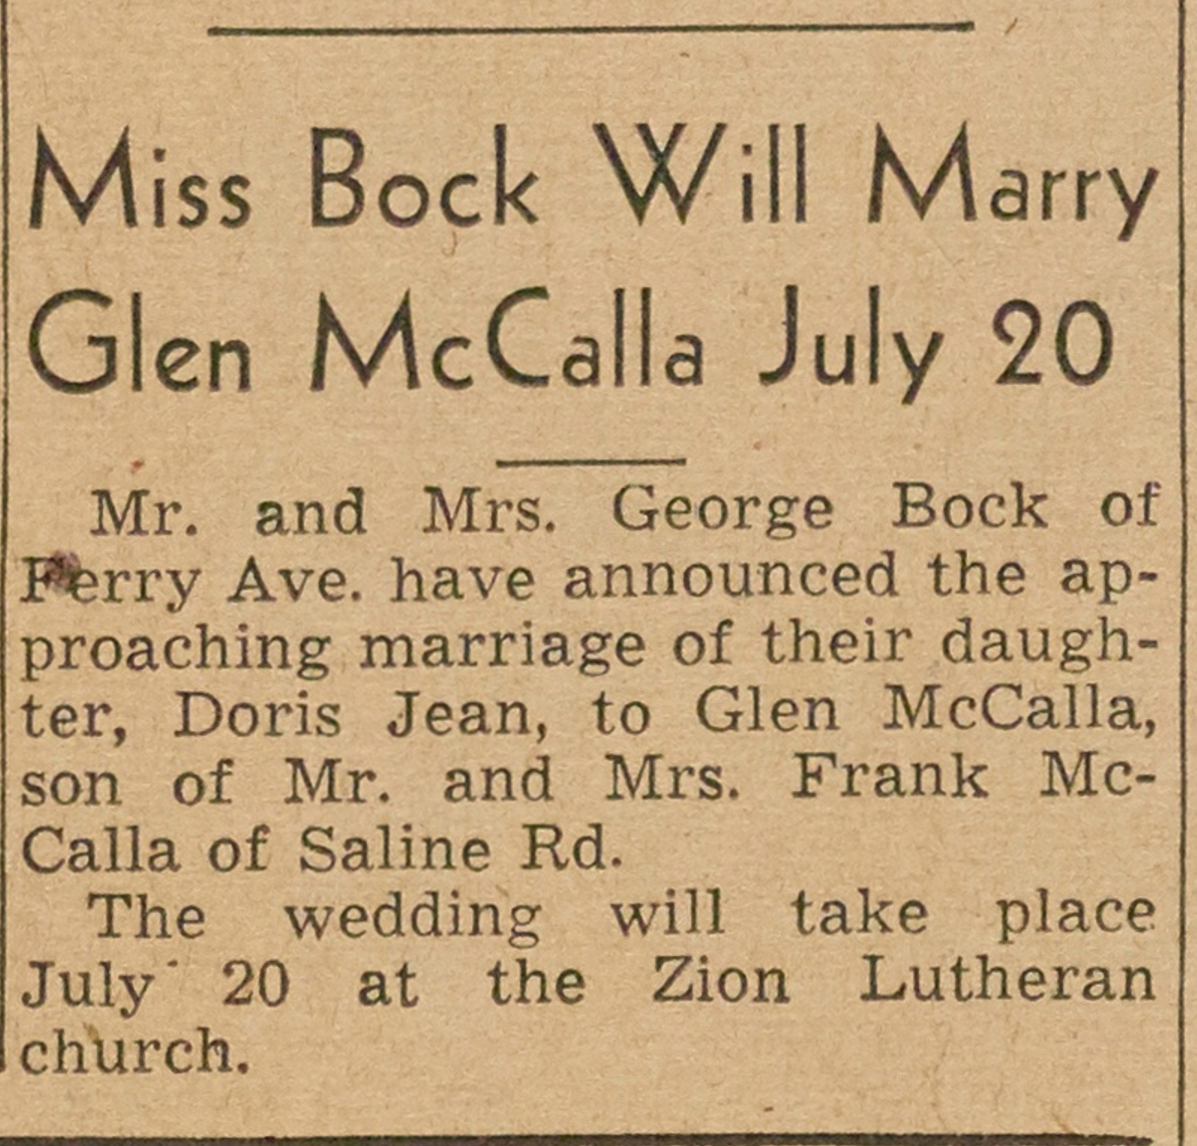 Miss Bock Will Marry Glen McCalla July 20 image